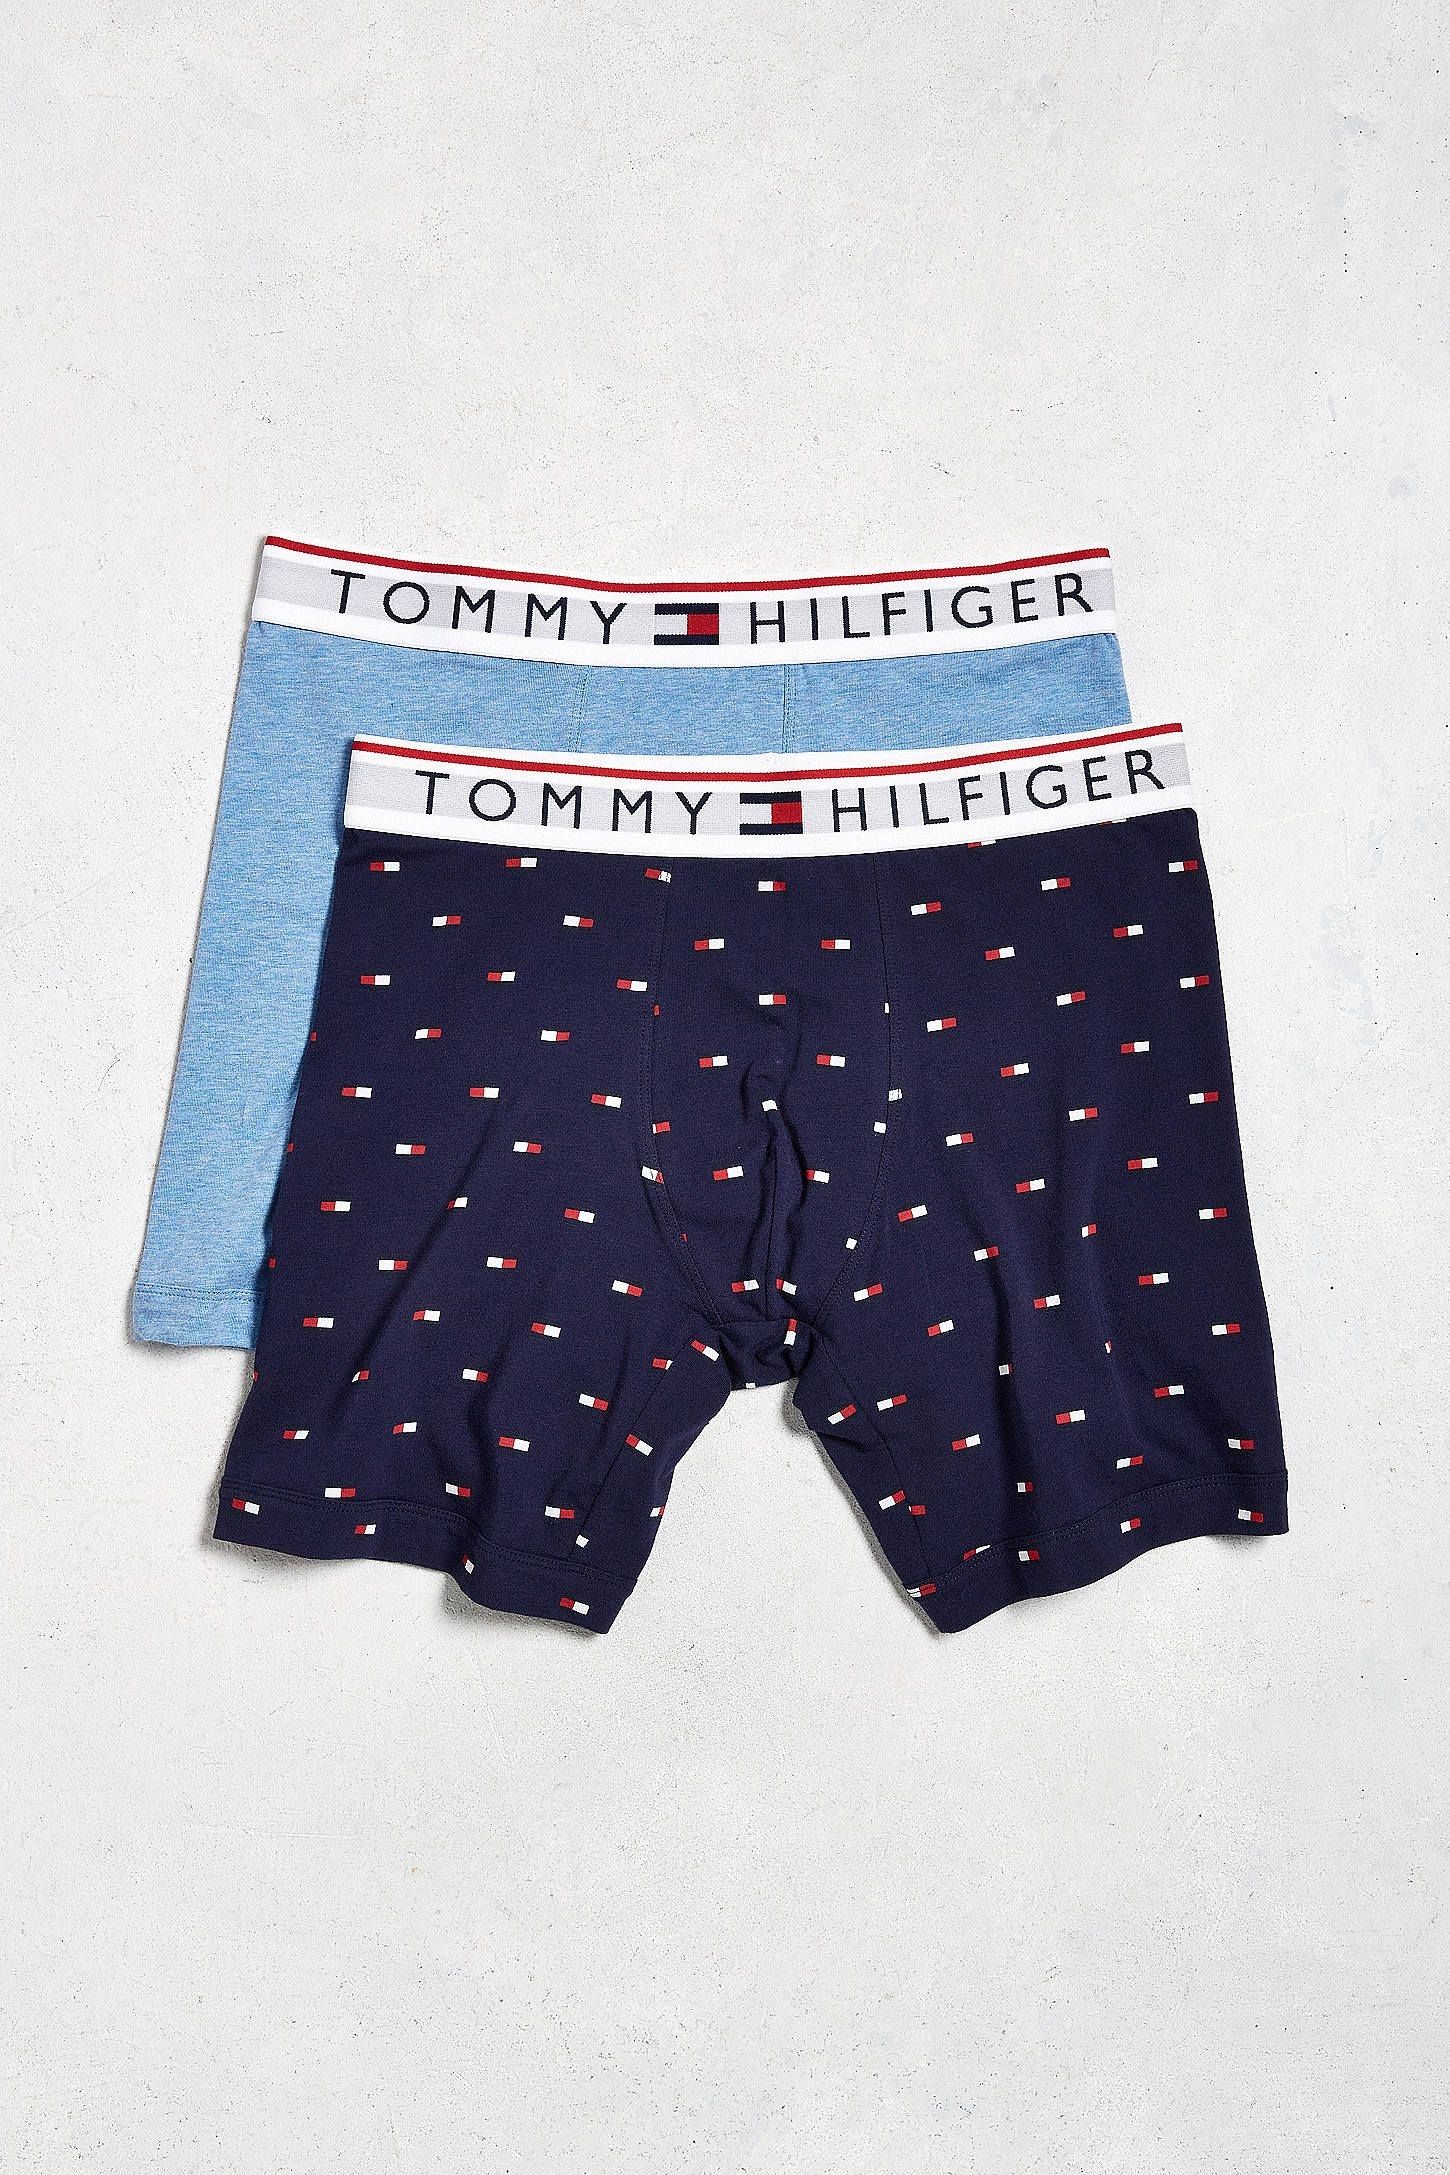 0fcb2226 Shop Tommy Hilfiger Boxer Brief 2-Pack at Urban Outfitters today. We carry  all